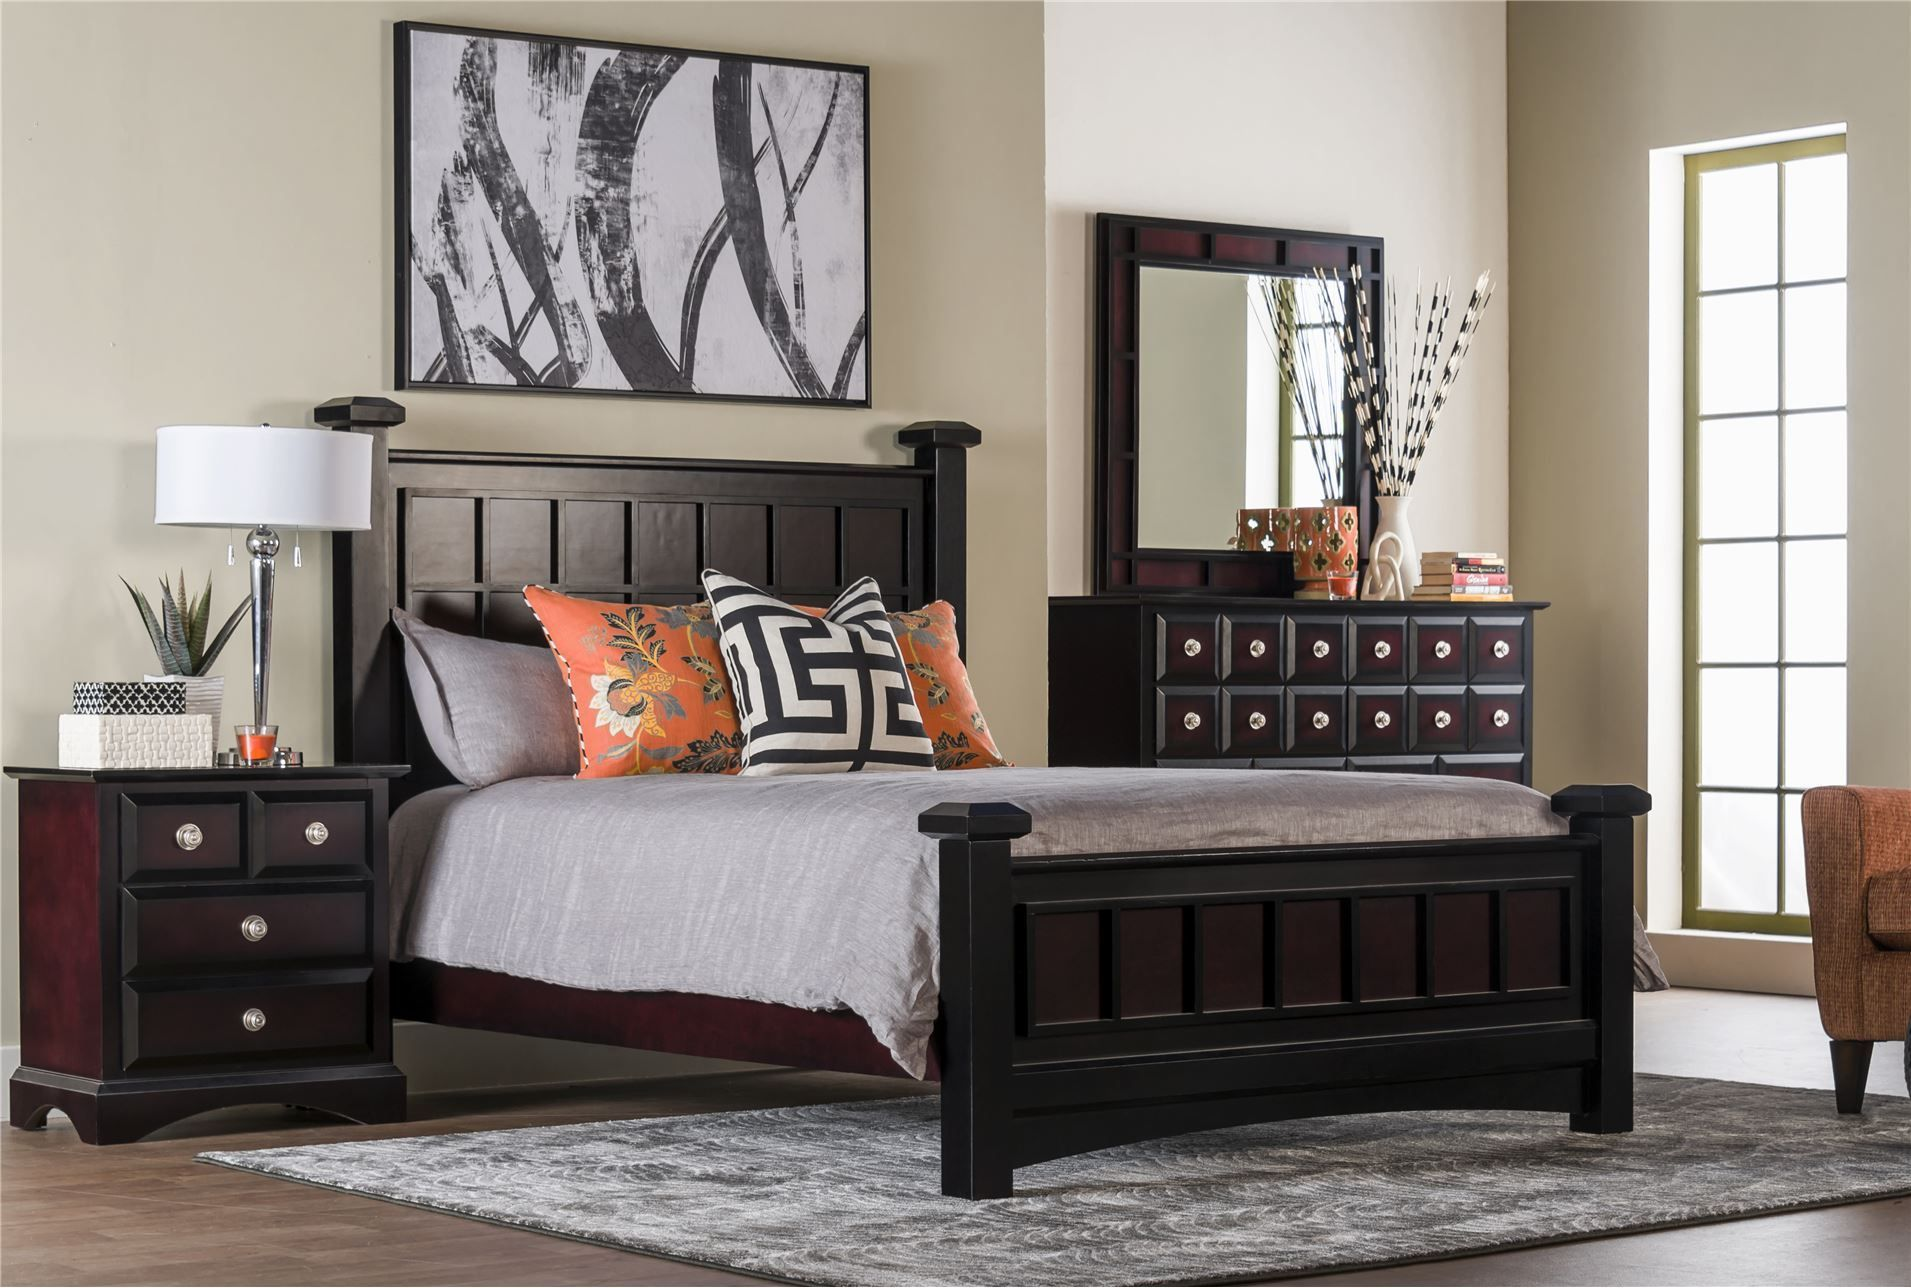 Affordable Can Look Classy Http Www Livingspaces Com Productview Aspx Productid 41844 Bvrrwidgetid Living Spaces Furniture Bedroom Sets Living Spaces Bedroom set living spaces